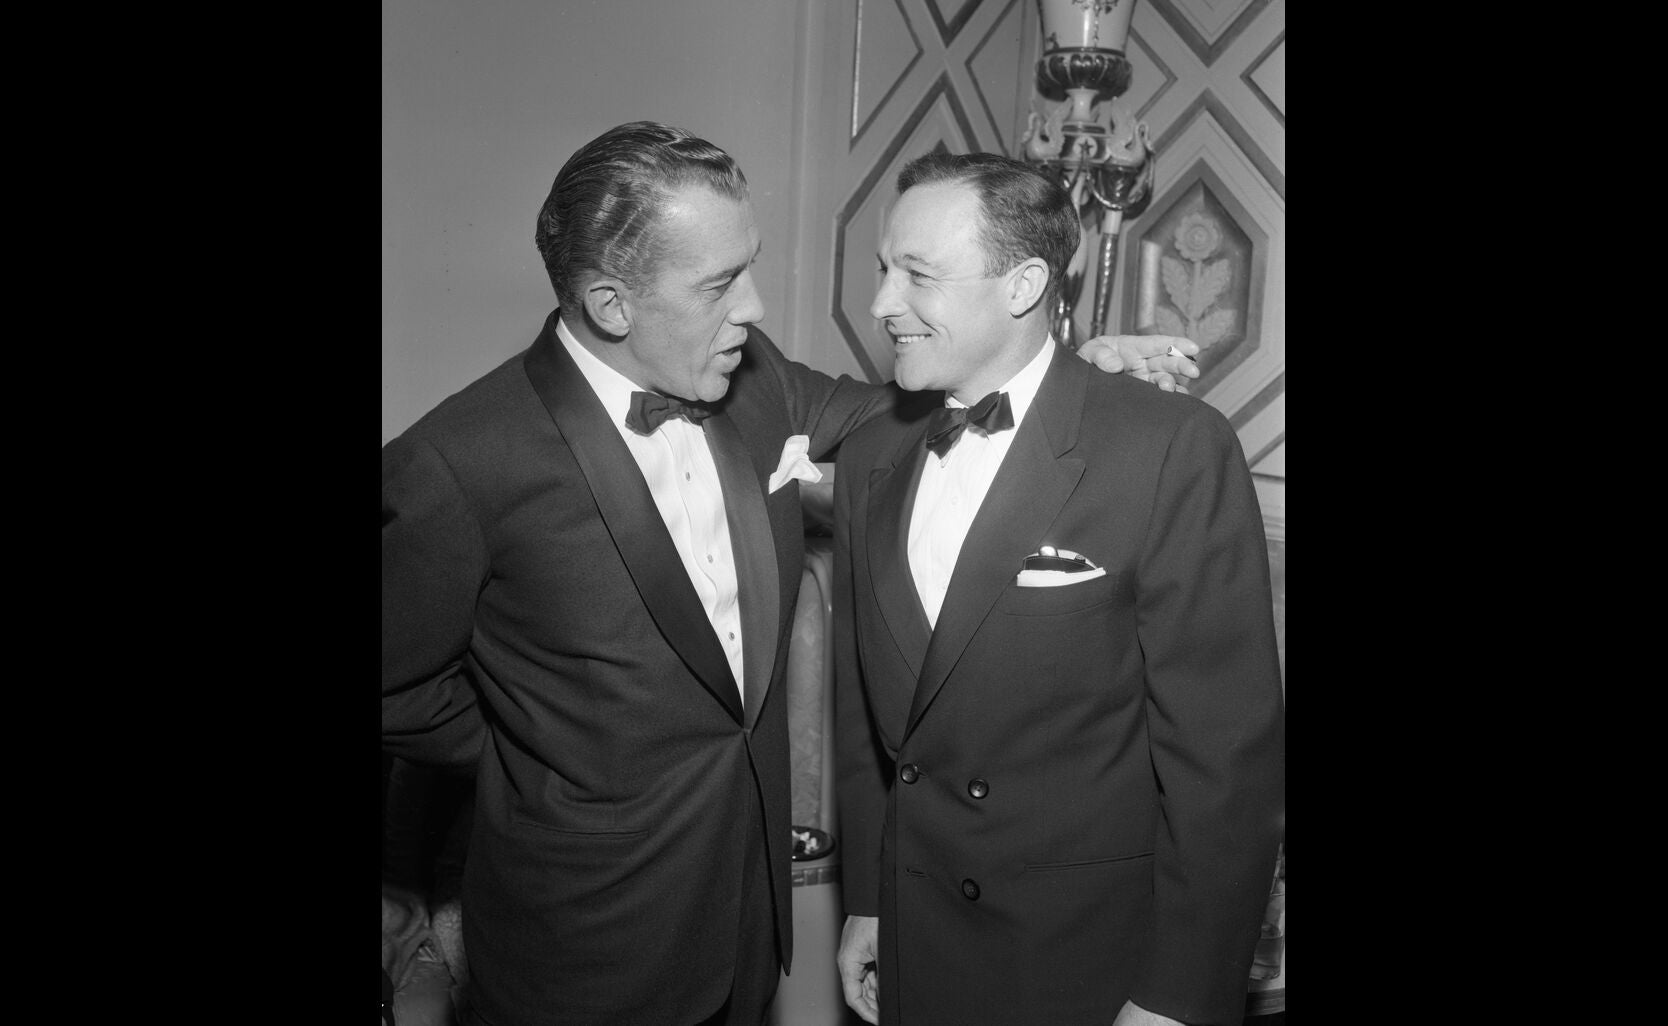 Ed Sullivan and Gene Kelly at the 1959 Golden Globe Awards